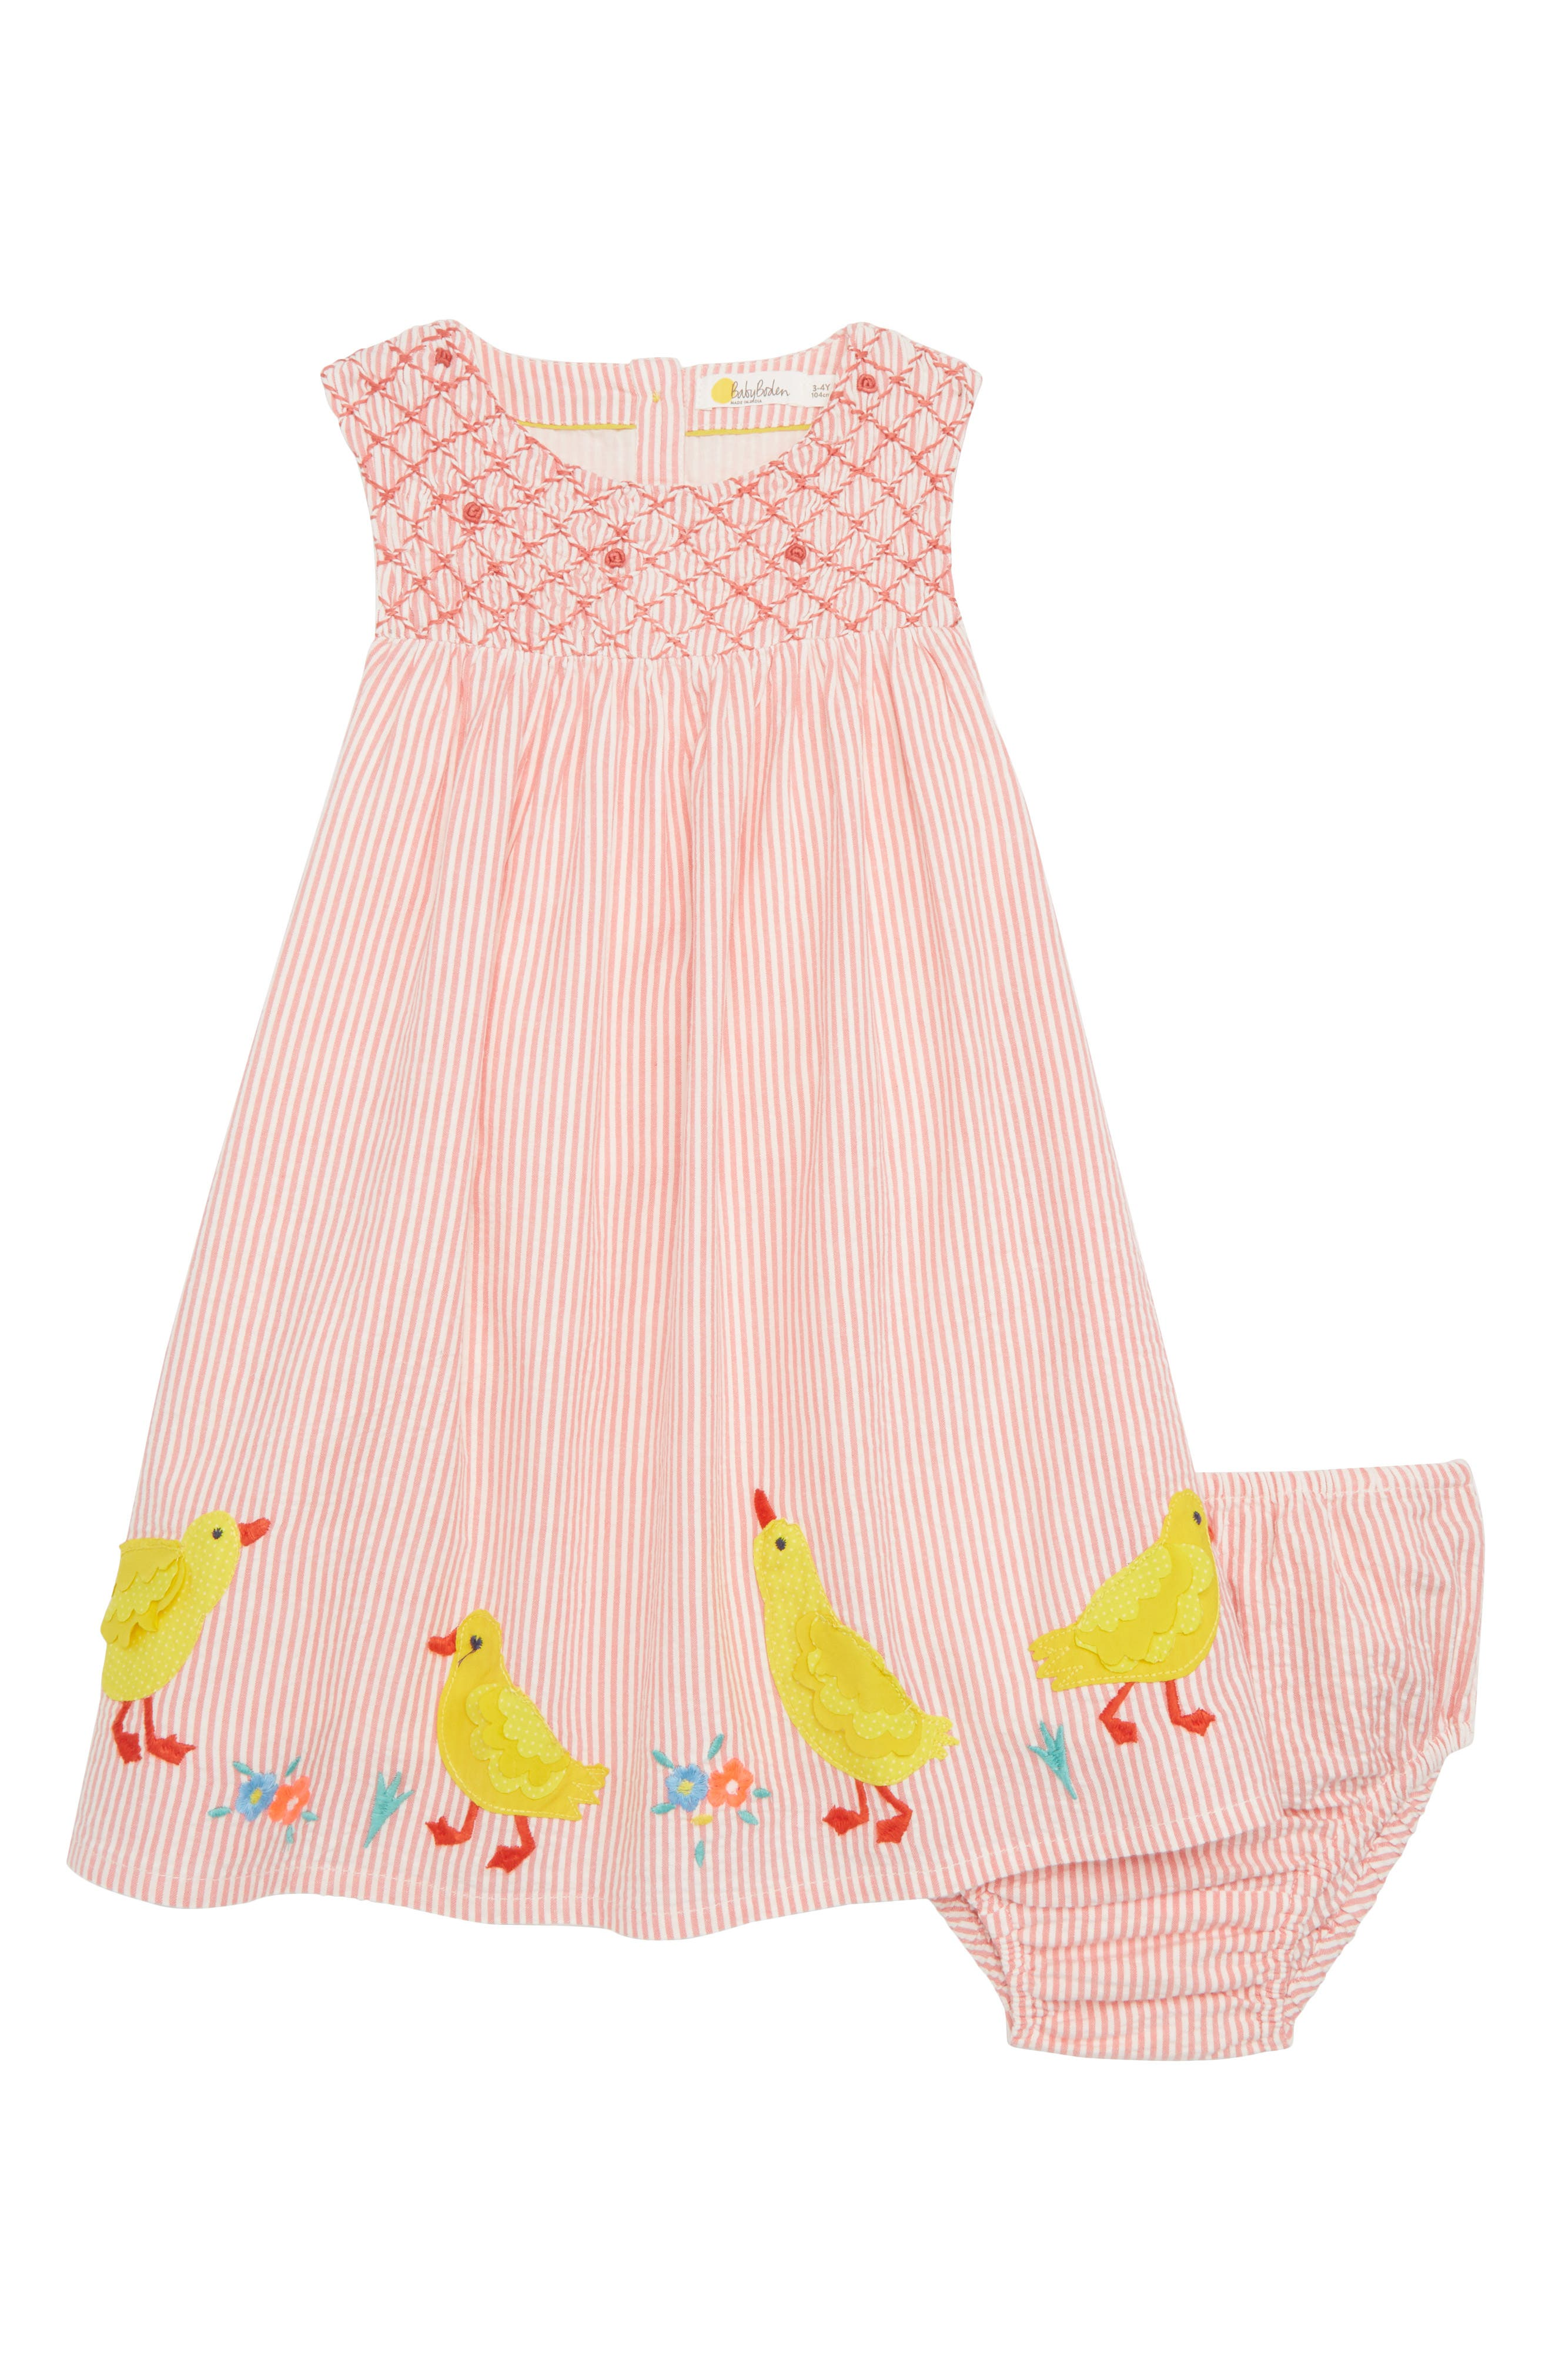 Smocked Chick Appliqué Dress,                             Main thumbnail 1, color,                             Crab Apple/ Pink Duck